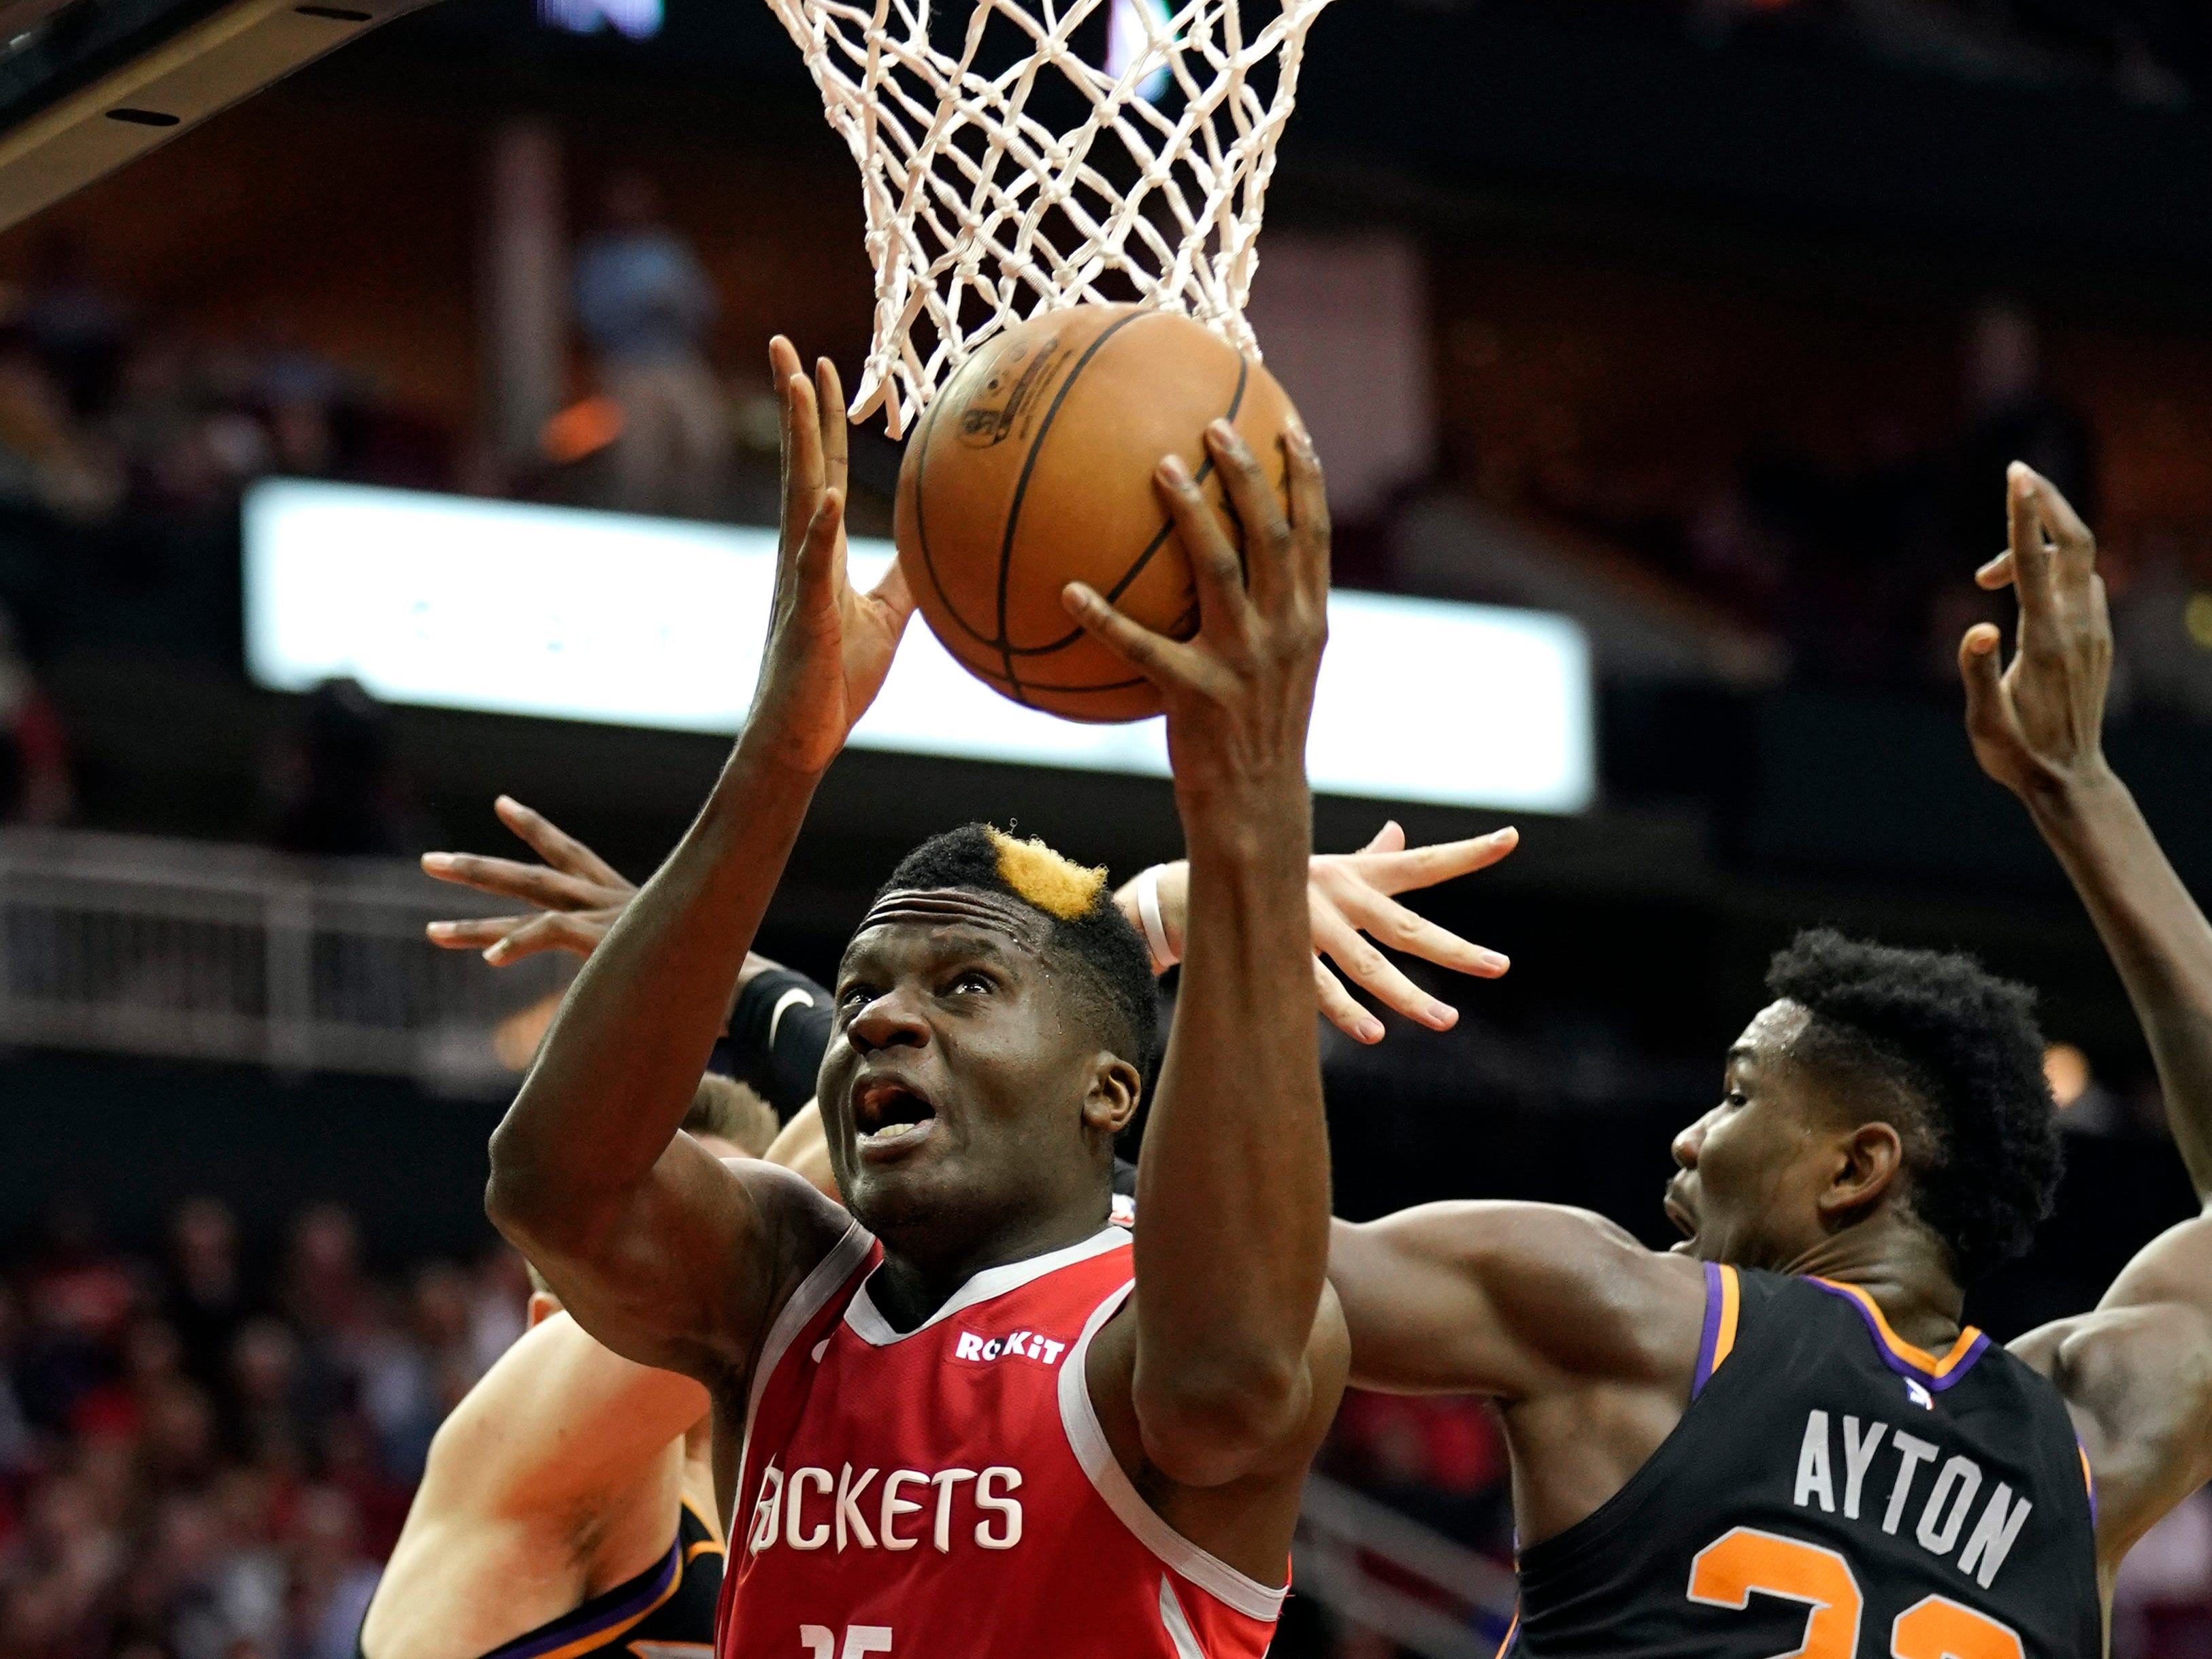 Houston Rockets' Clint Capela (15) goes up for a shot as Phoenix Suns' Deandre Ayton (22) and Dragan Bender defend during the second half of an NBA basketball game Friday, March 15, 2019, in Houston. The Rockets won 108-102. (AP Photo/David J. Phillip)